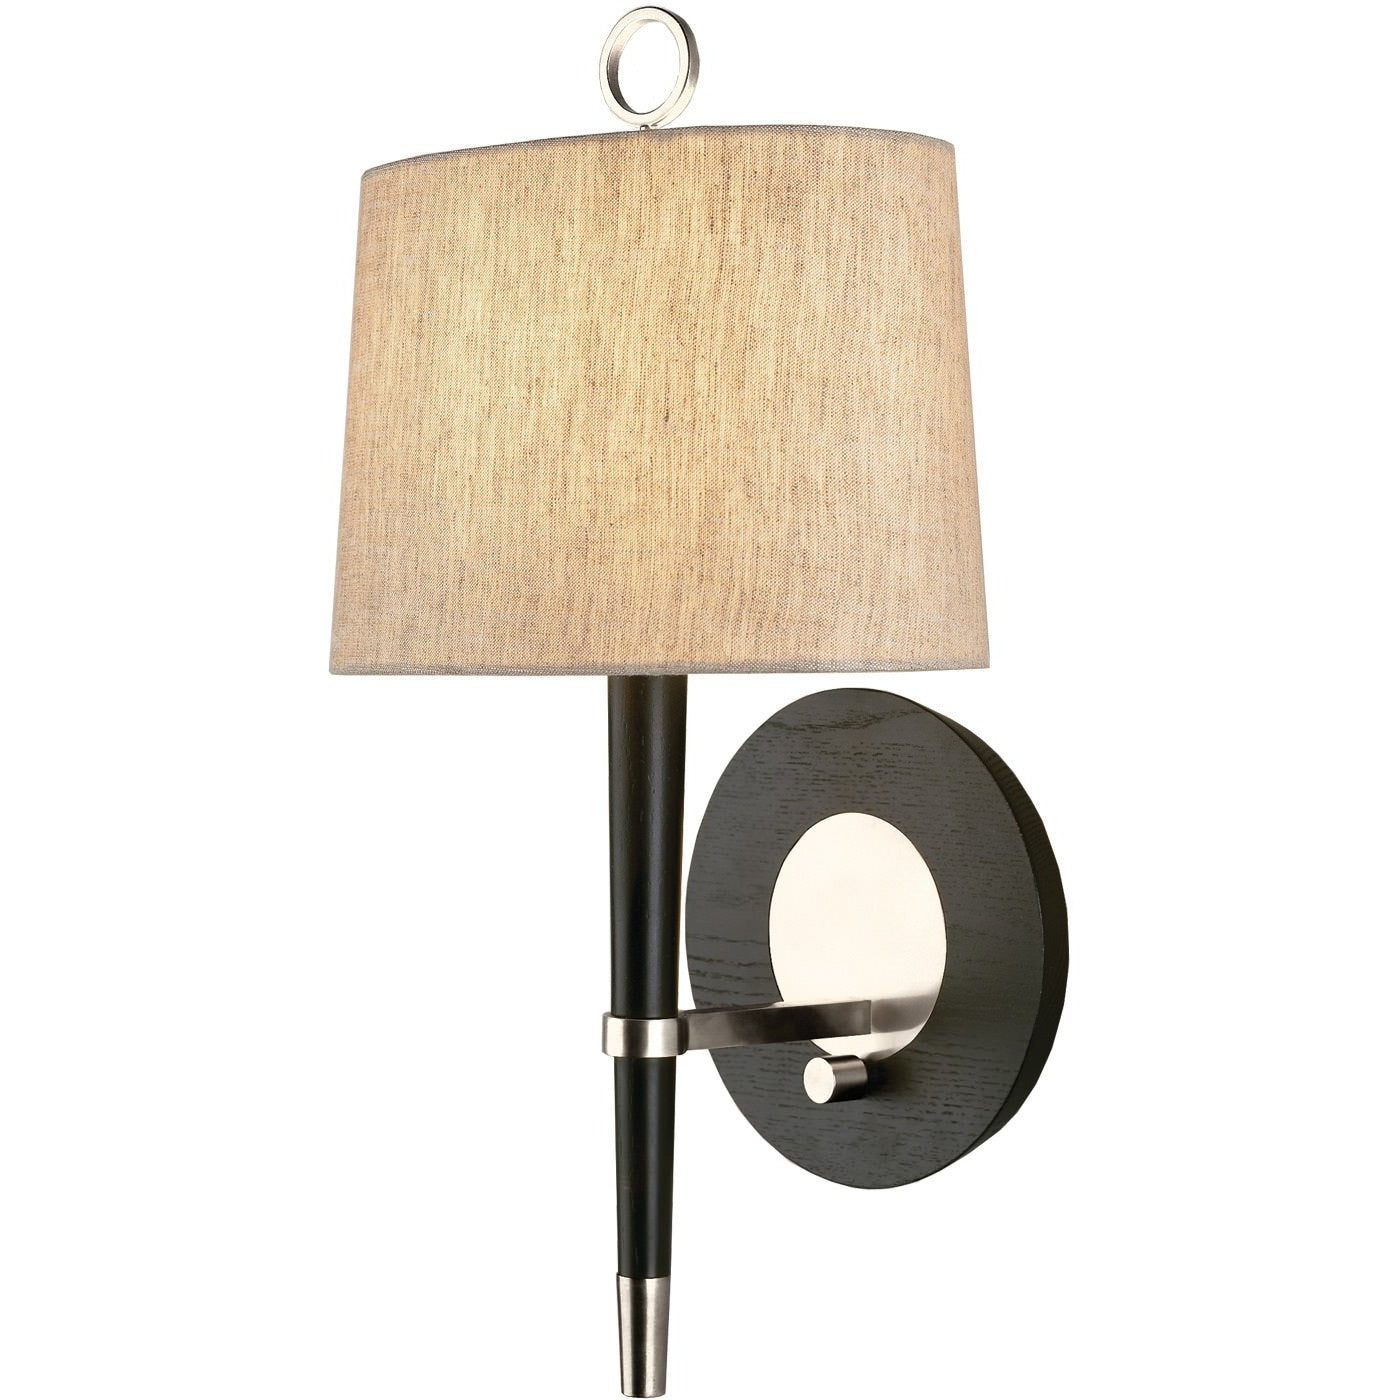 jonathan adler ventana wall sconce antique nickel ebony wall lighting